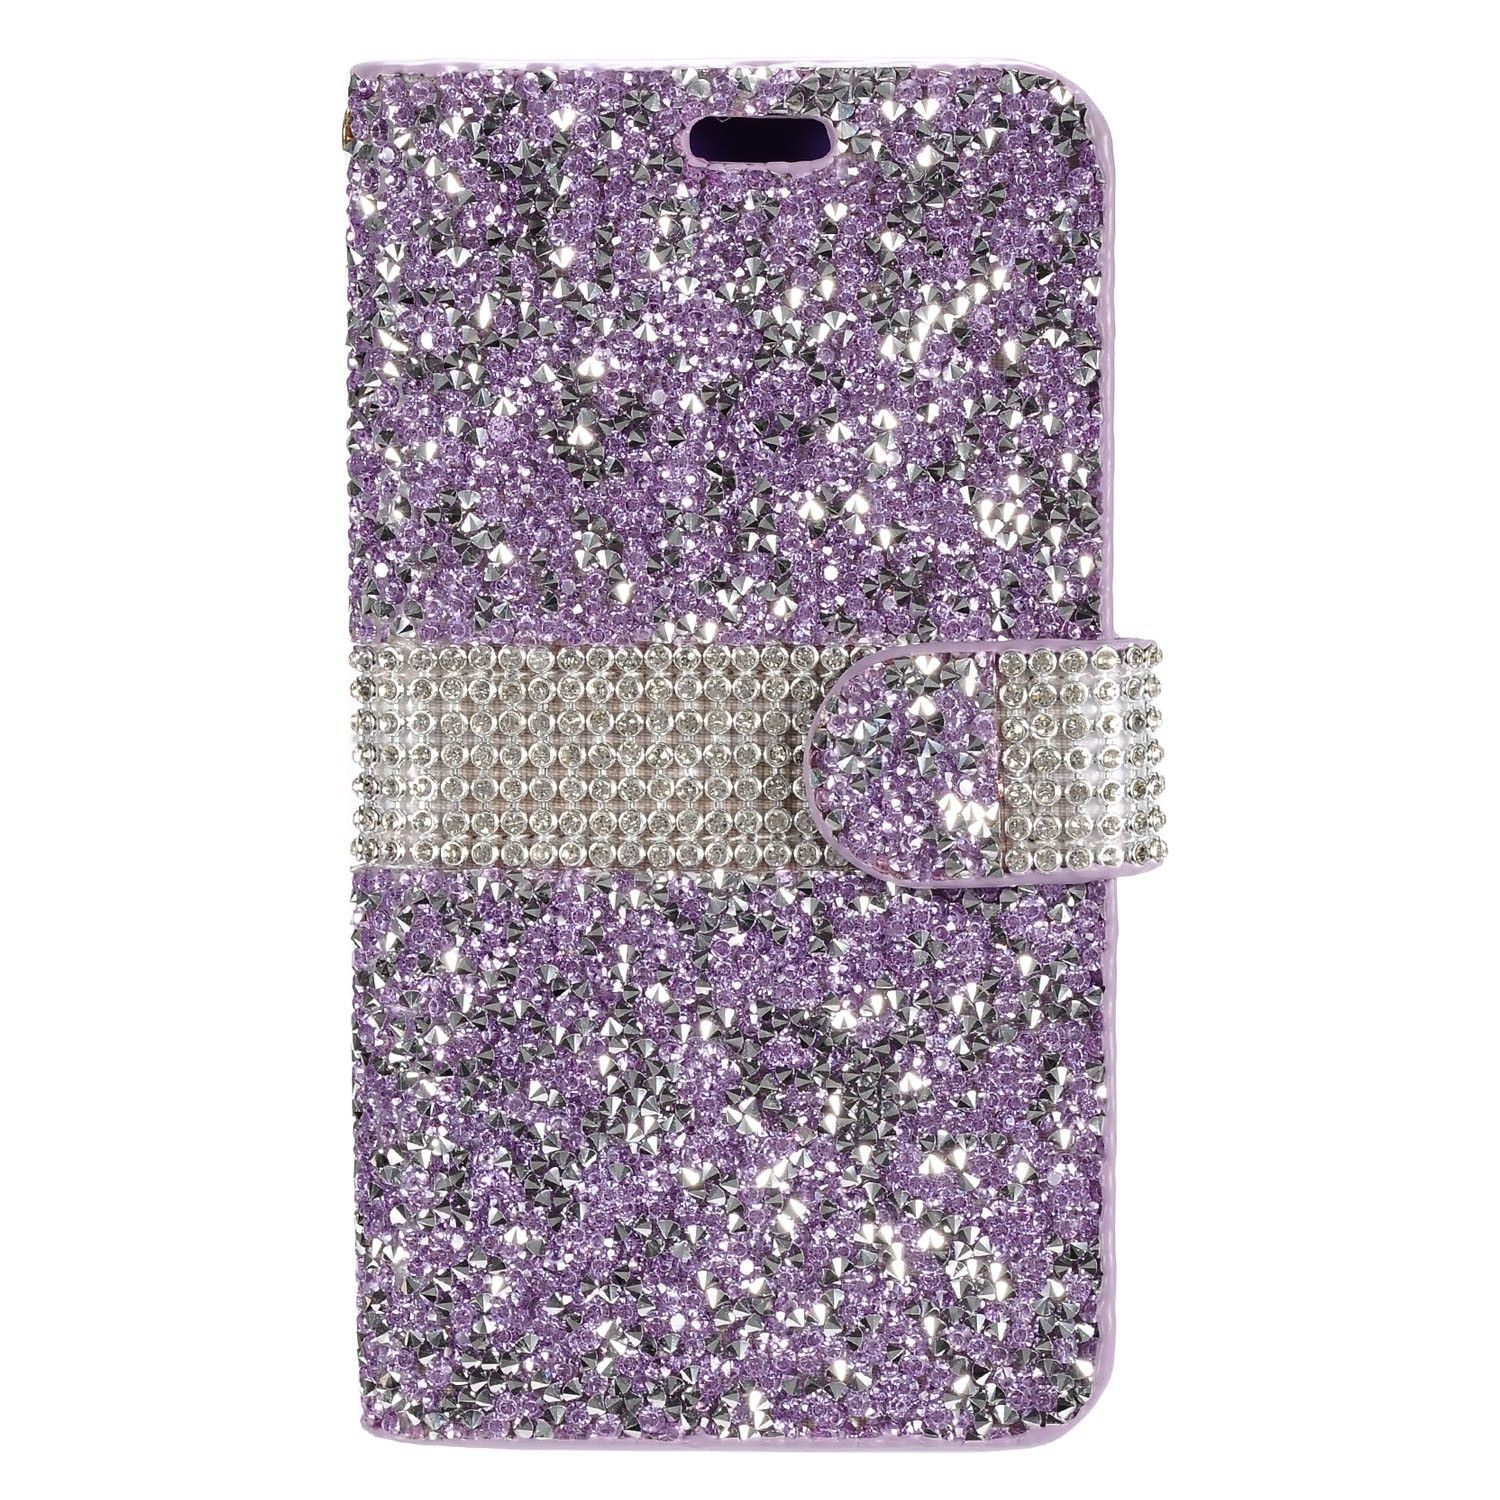 Apple iPhone 6/6s - Shimmering Rhinestone Phone Wallet Case, Purple